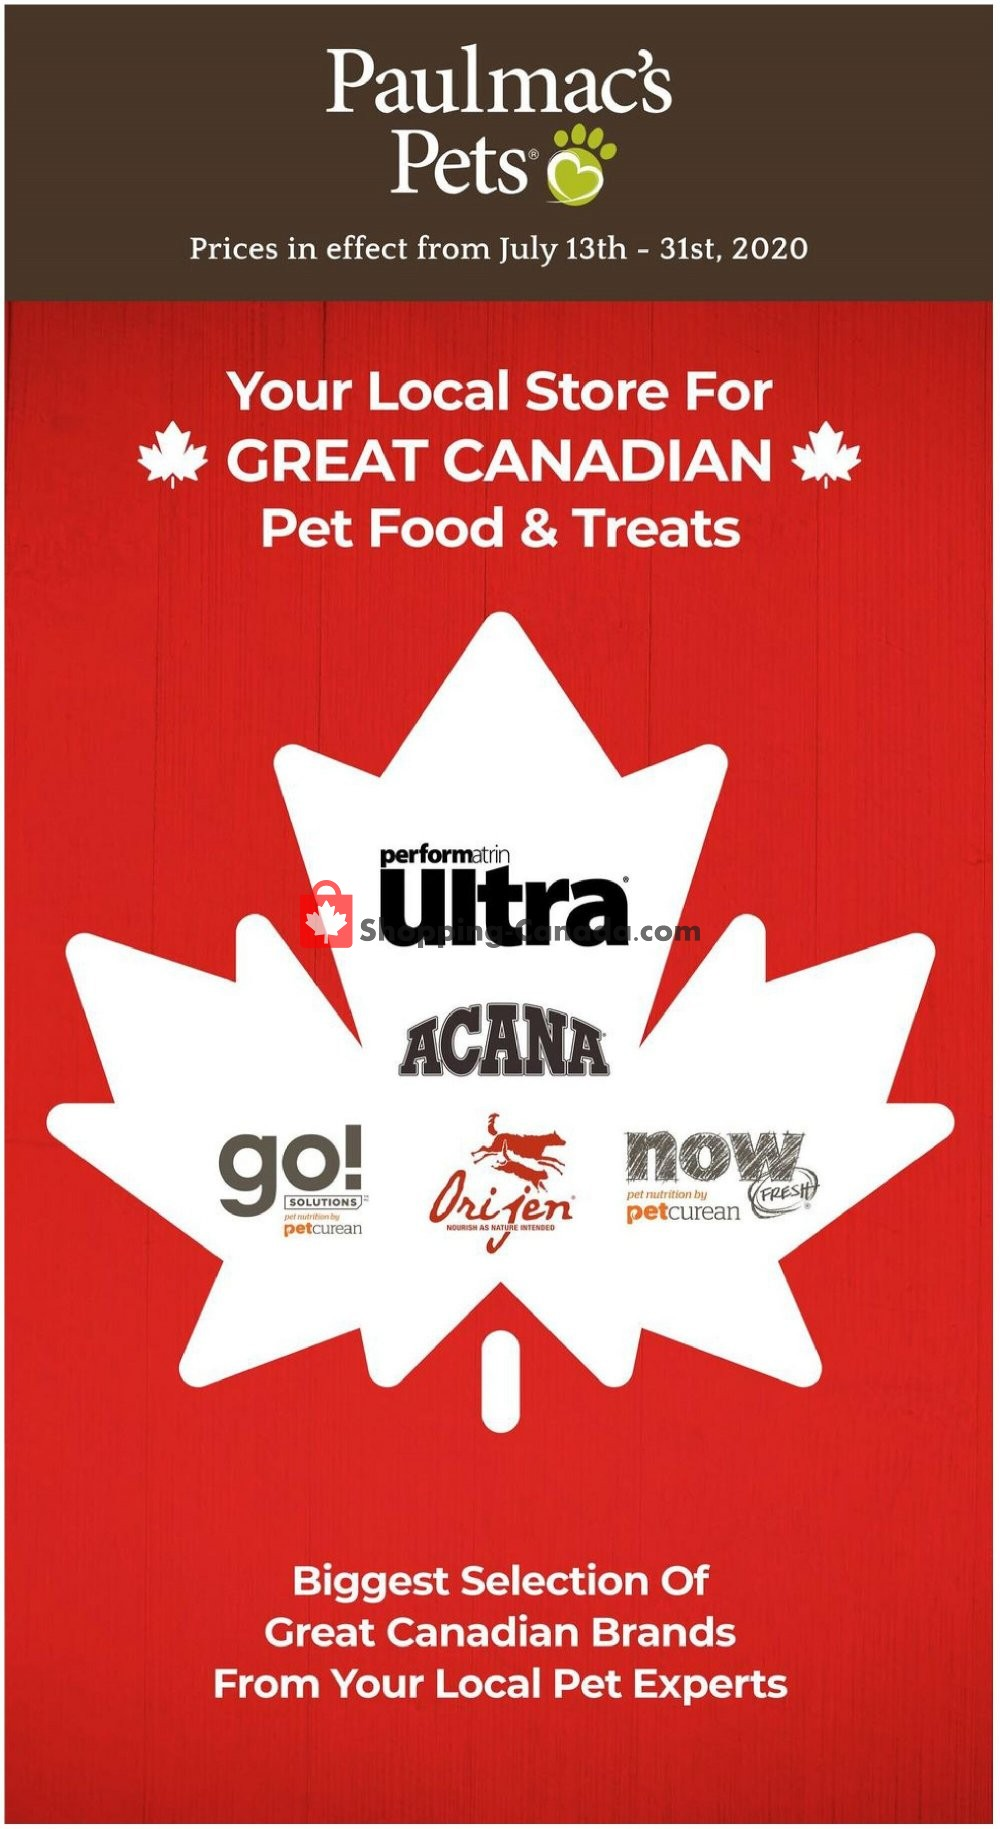 Flyer Paulmac's Pets Canada - from Monday July 13, 2020 to Friday July 31, 2020